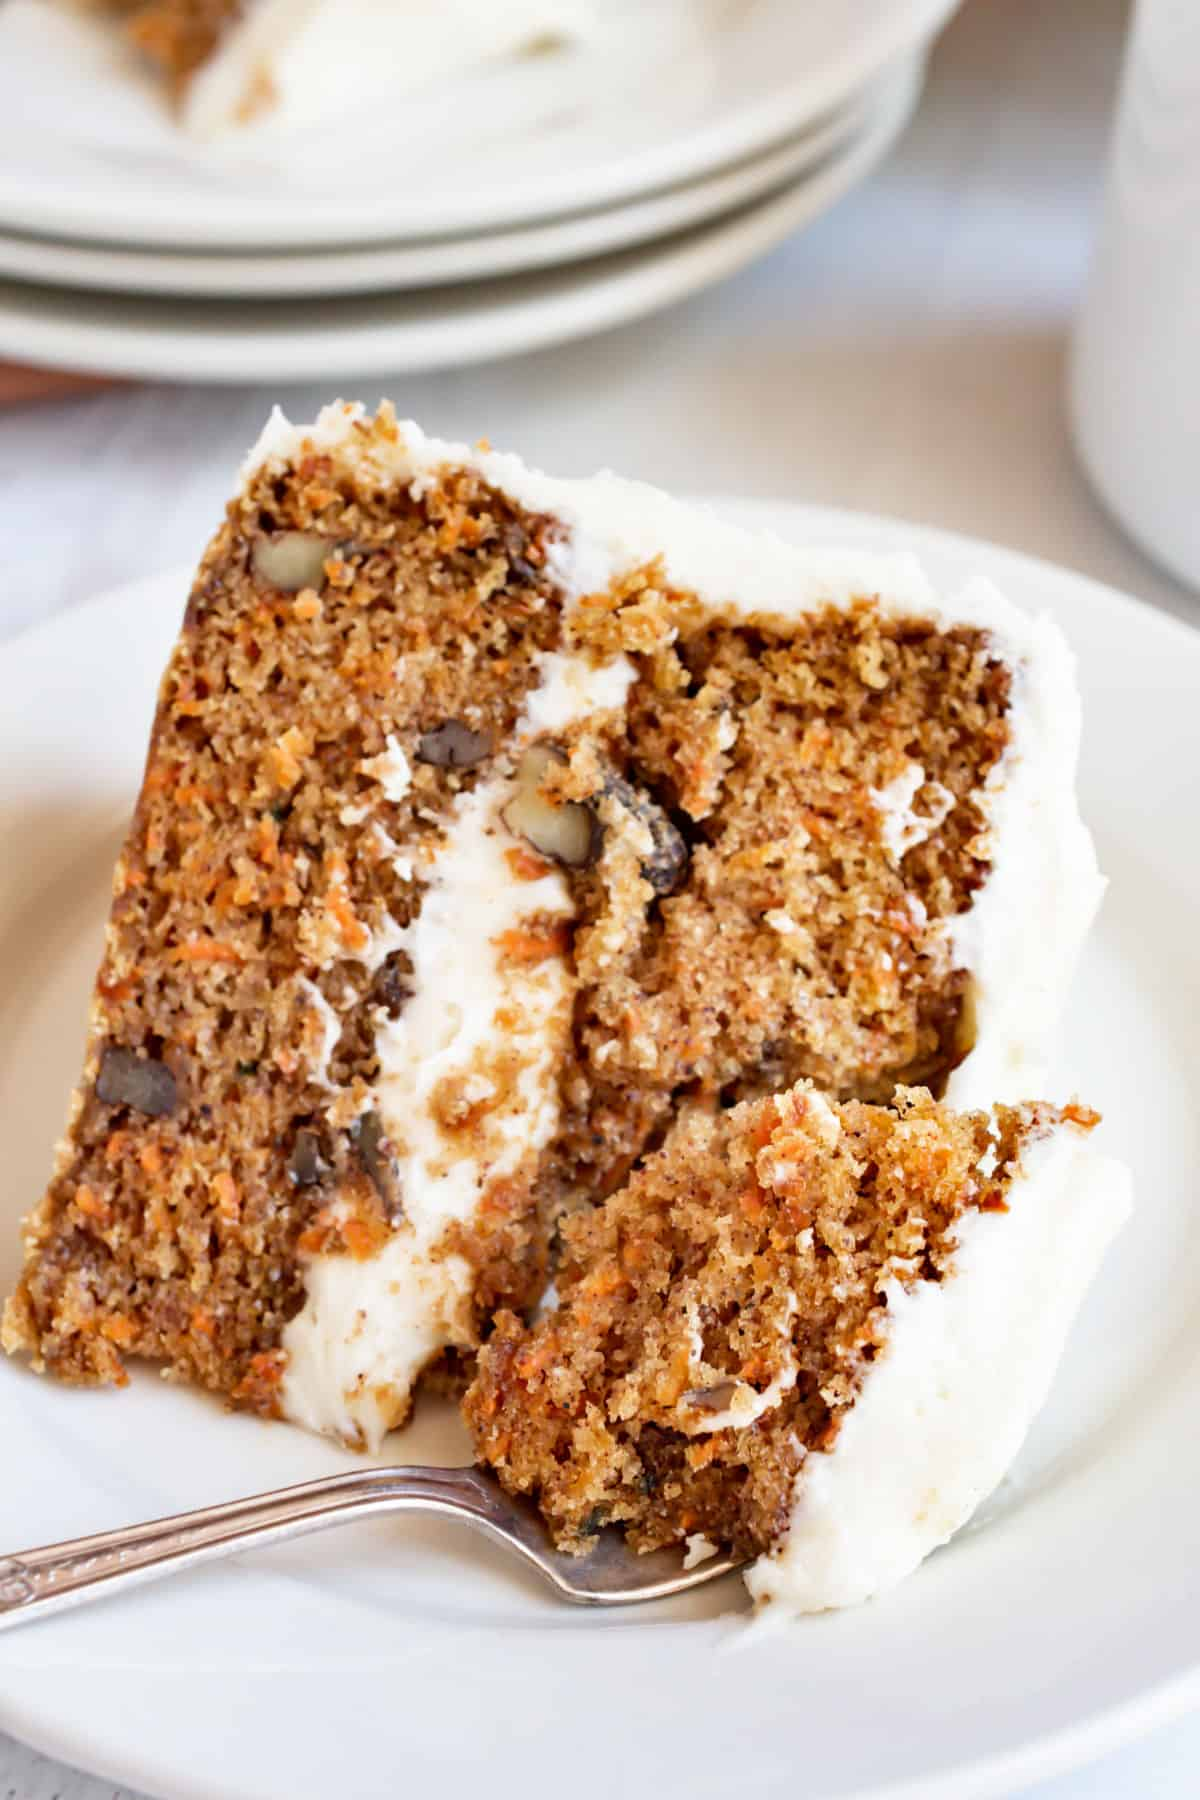 Slice of carrot layer cake on a plate with a fork.